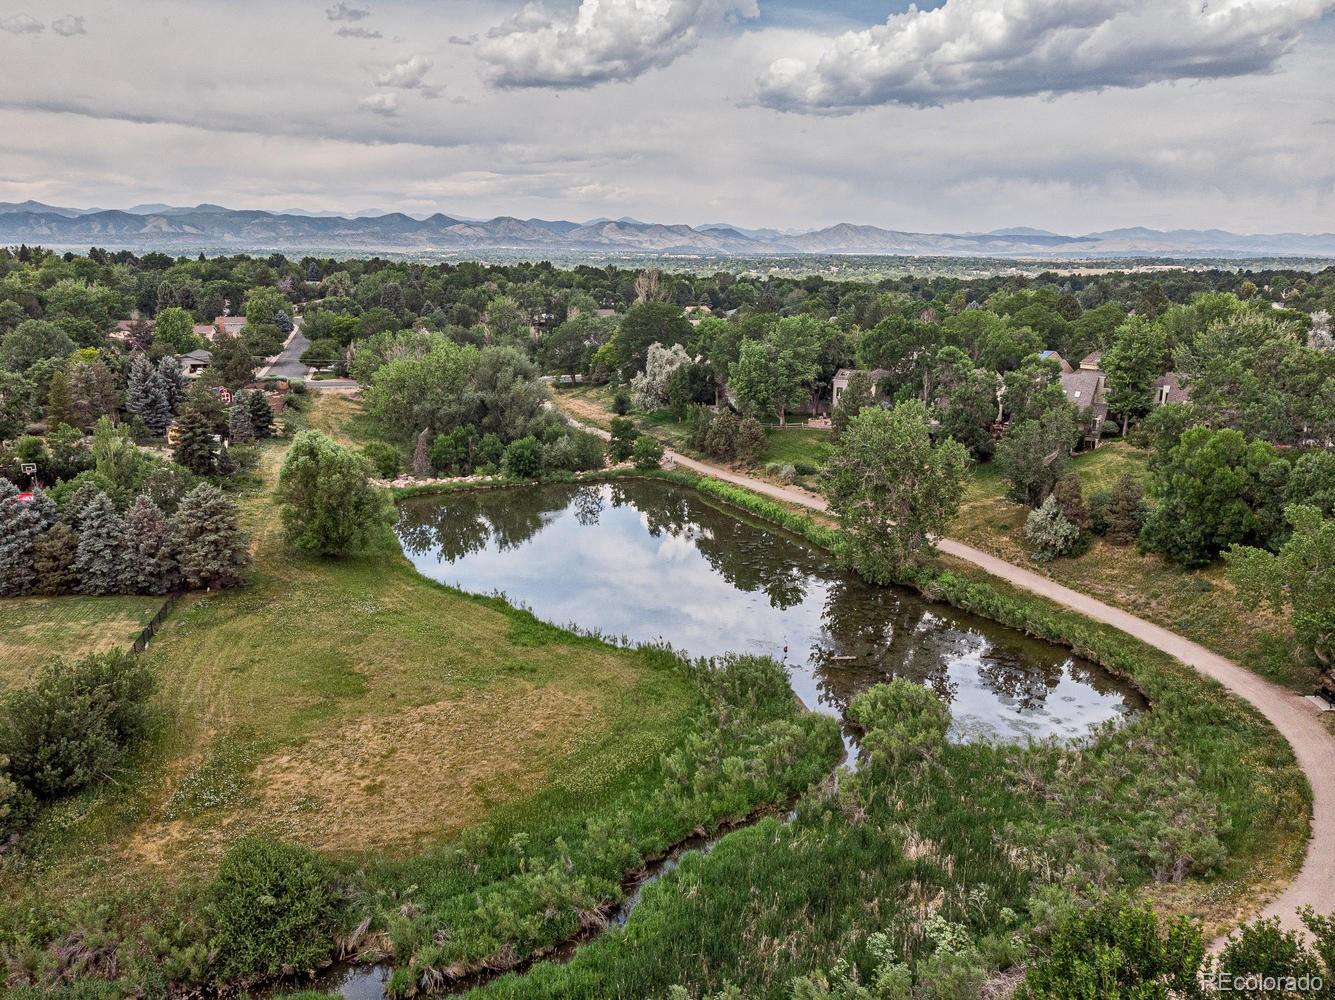 MLS# 5287137 - 2 - 1354 W Briarwood Avenue, Littleton, CO 80120